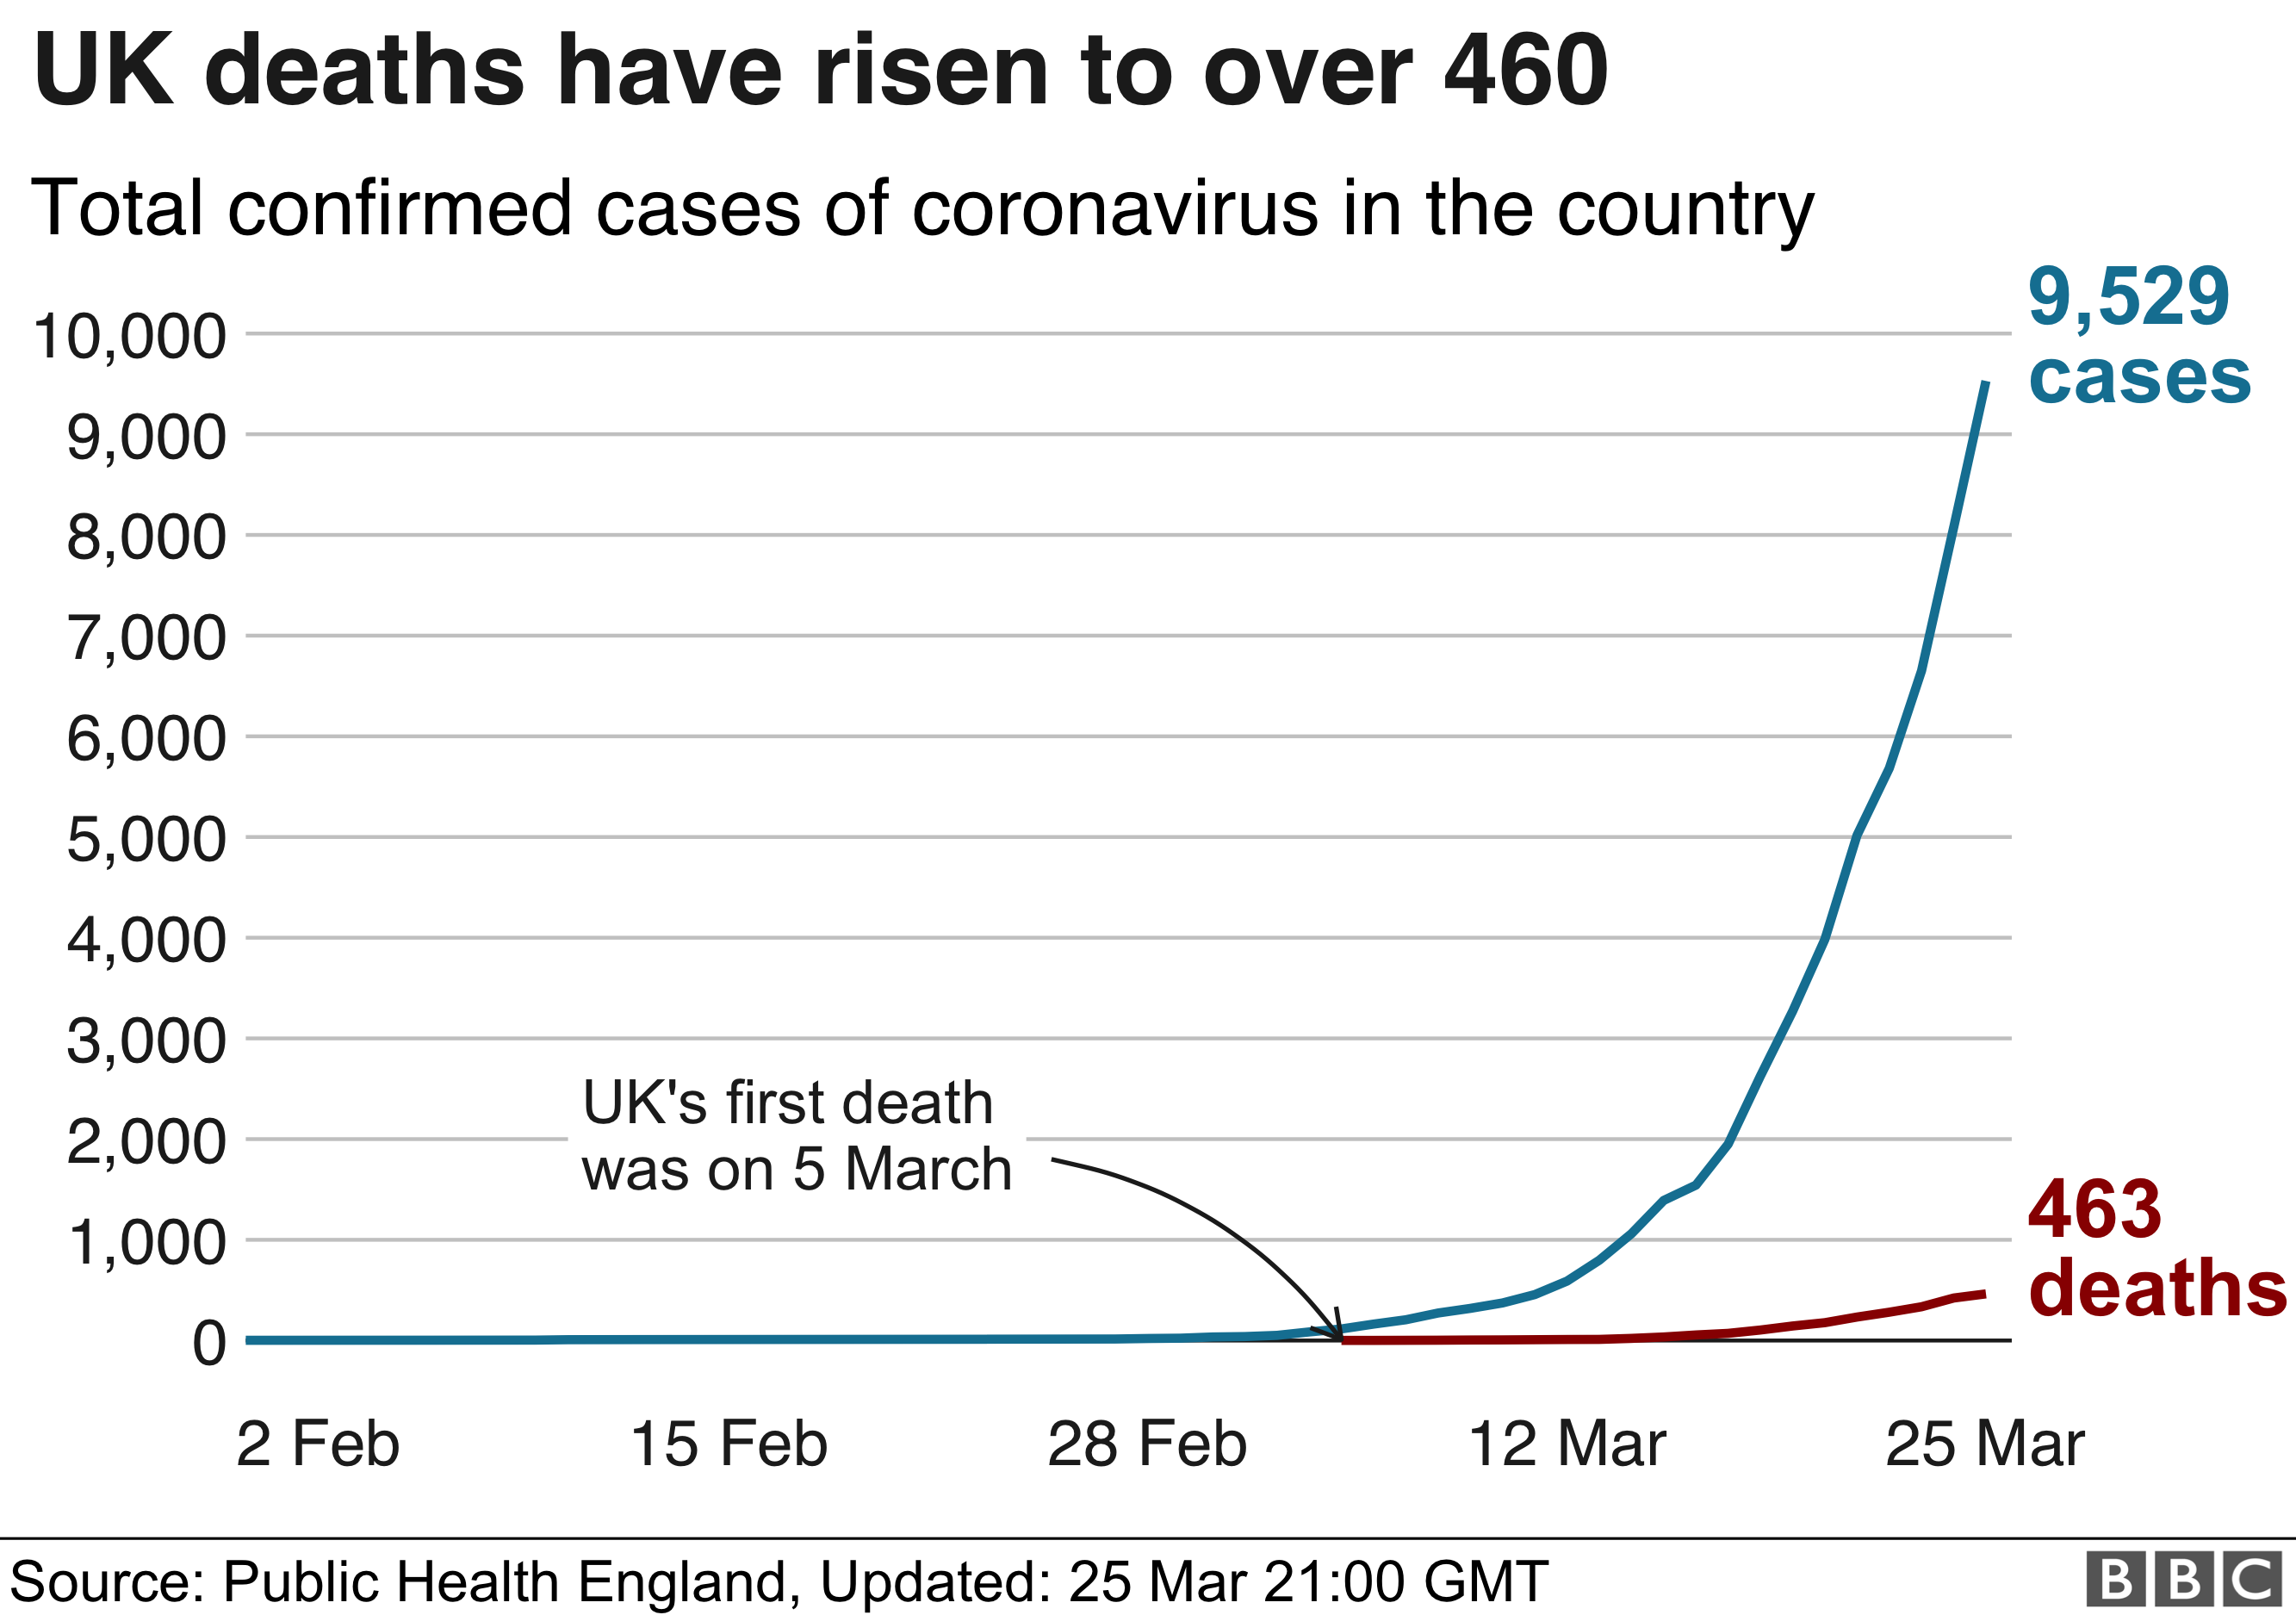 Chart showing how the number of UK deaths has risen in recent weeks